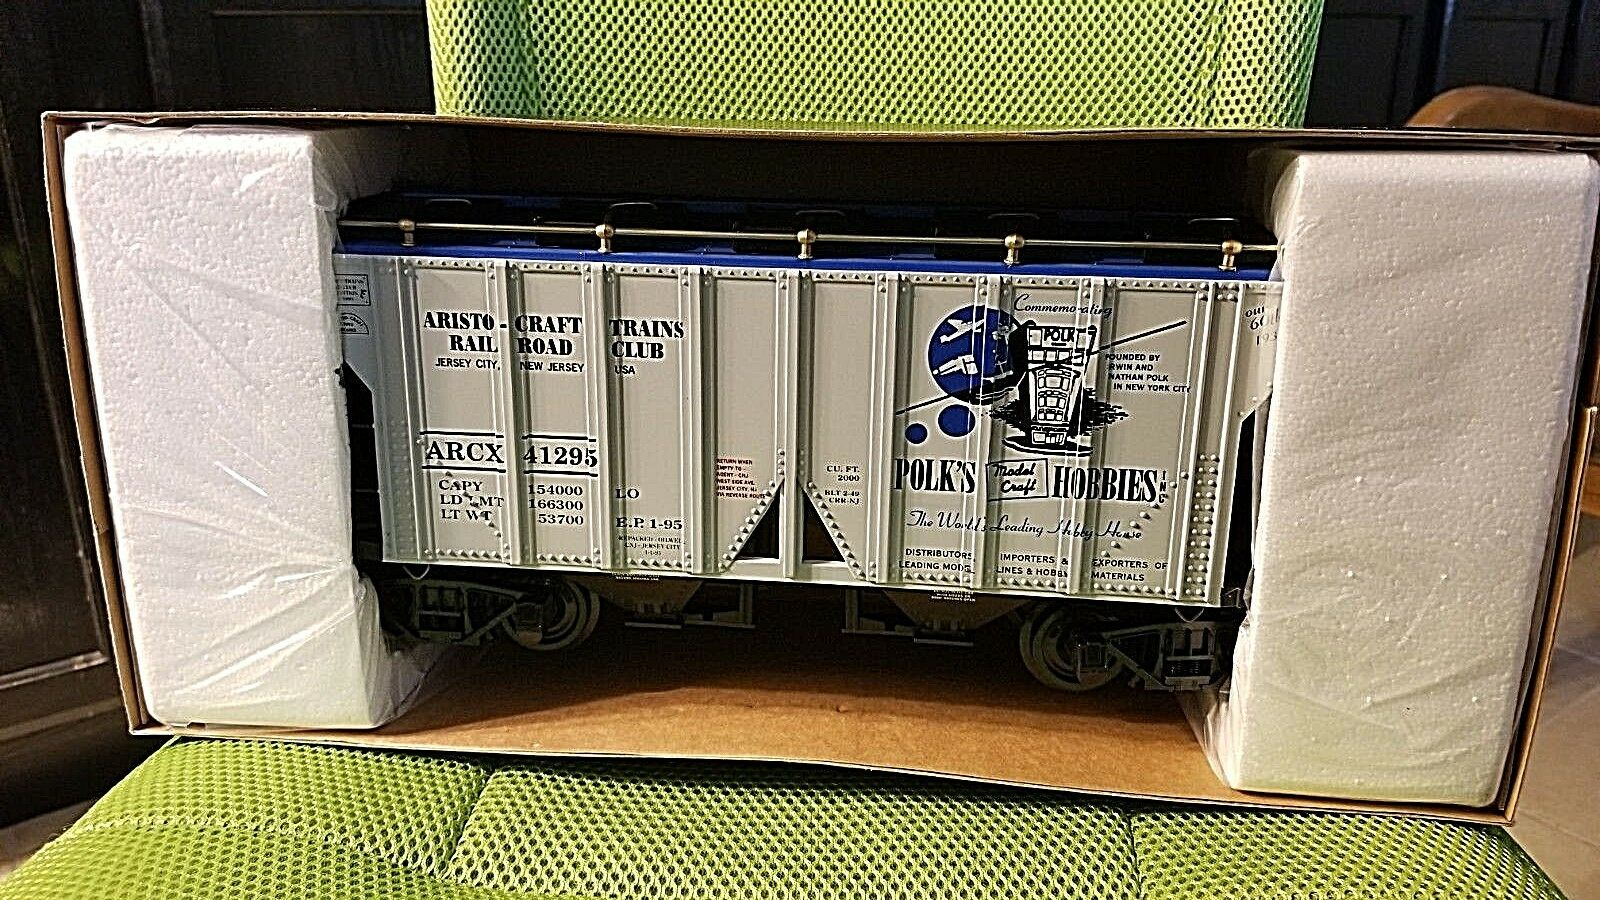 ARISTO CRAFT ART-412965 1995 Railroad Club 2-Bay Covered Hopper Car